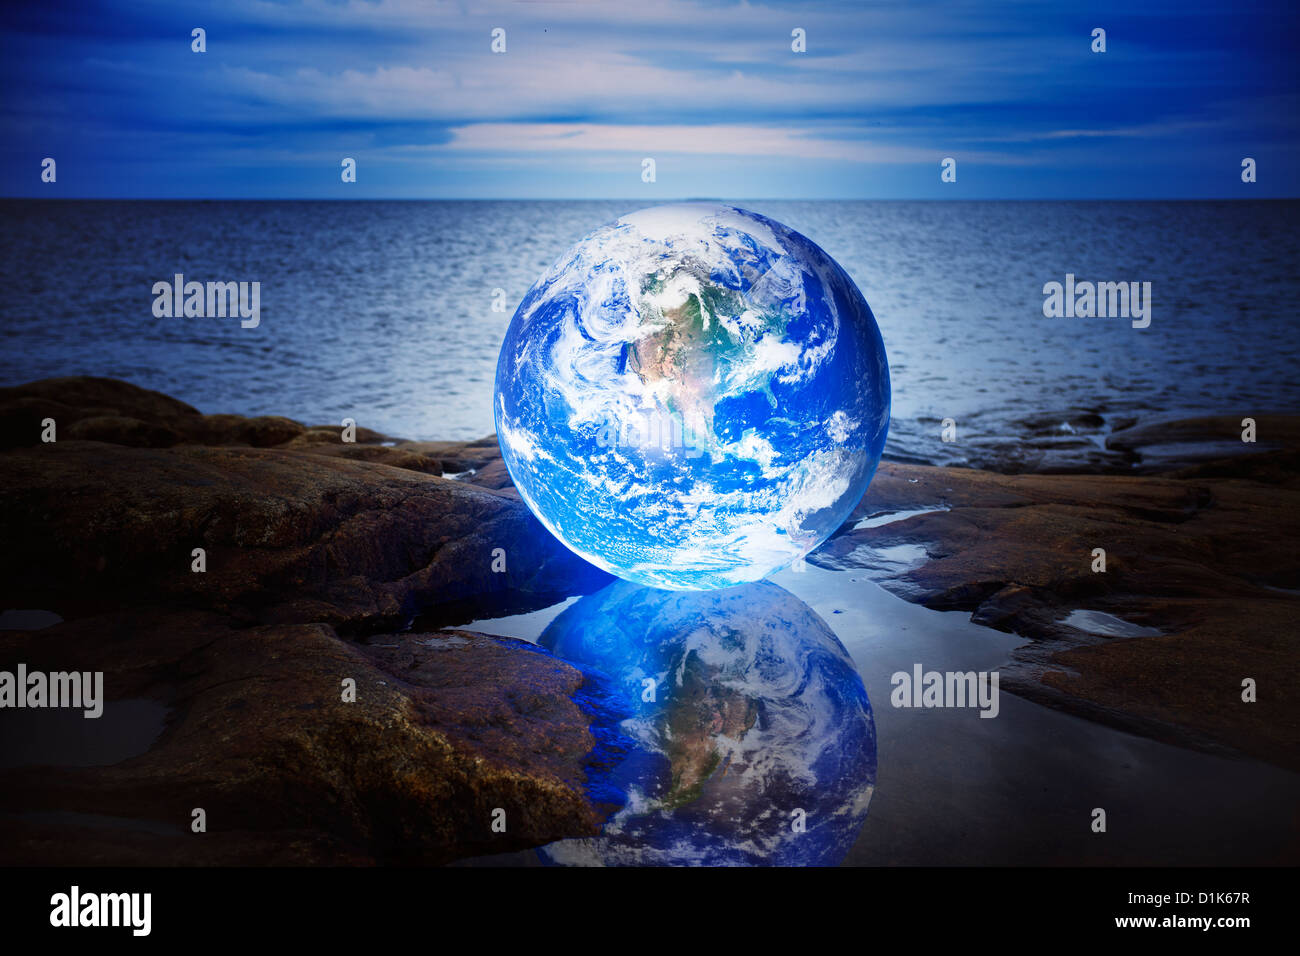 Conceptual image of a Glowing earth in a puddle at sea. Earth image provided by NASA. - Stock Image